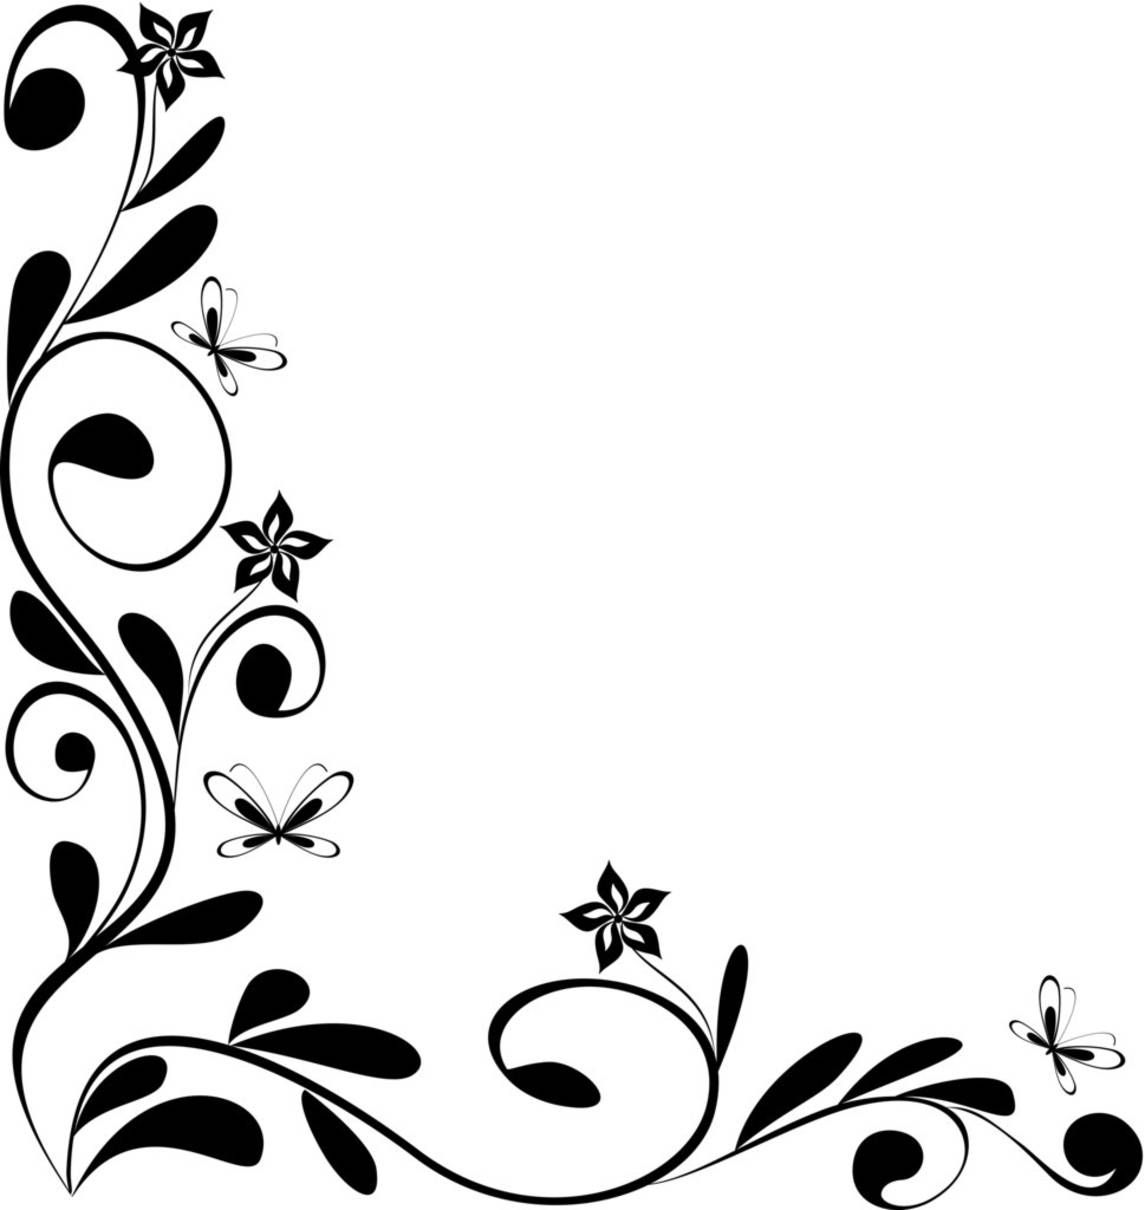 Corner drawings page borders. Floral border clipart black and white